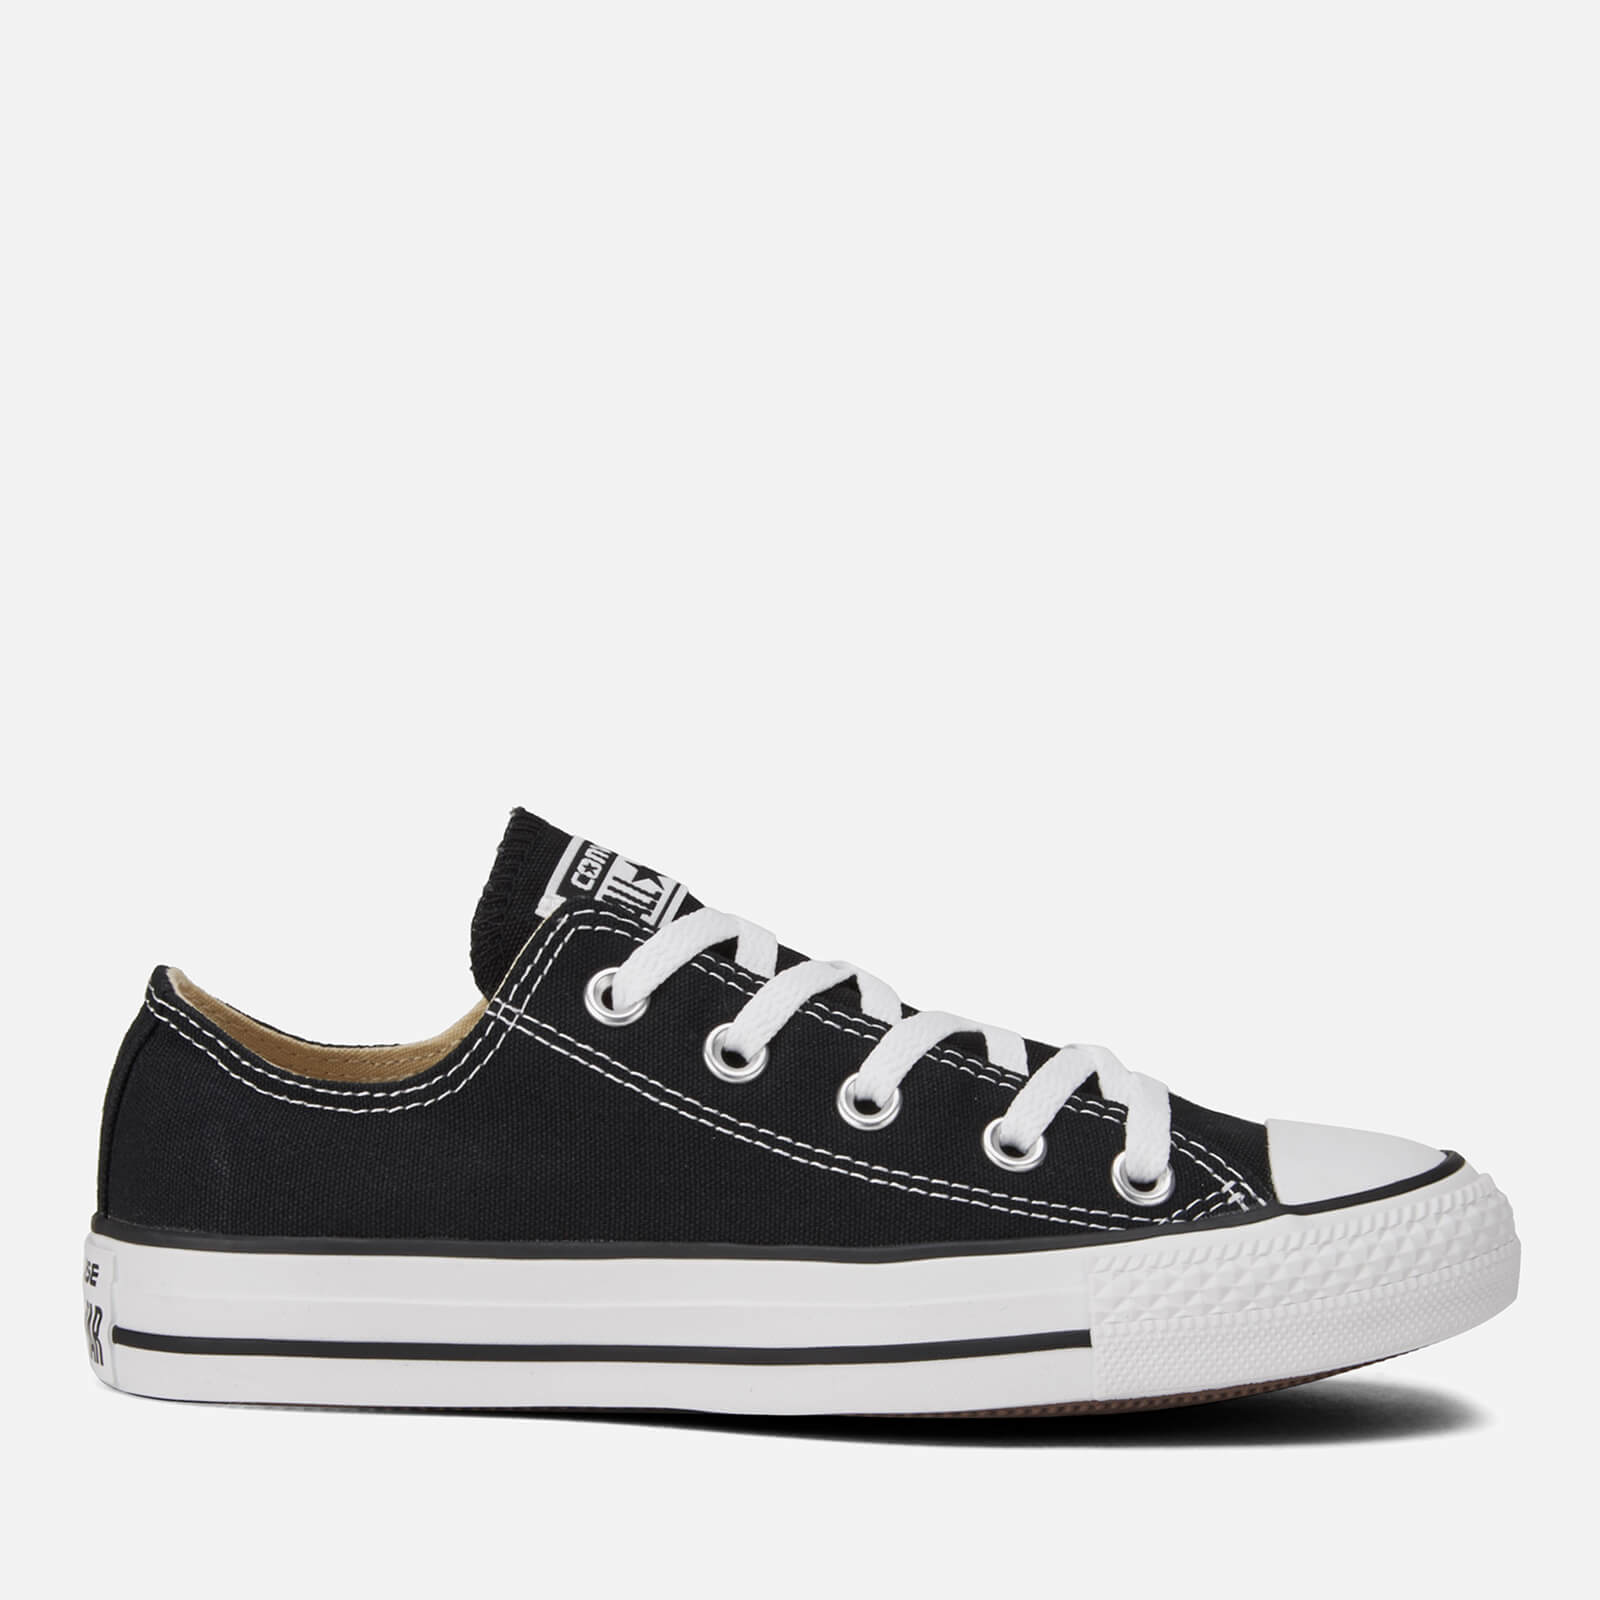 Converse Chuck Taylor All Star Ox Trainers Black Uk 4